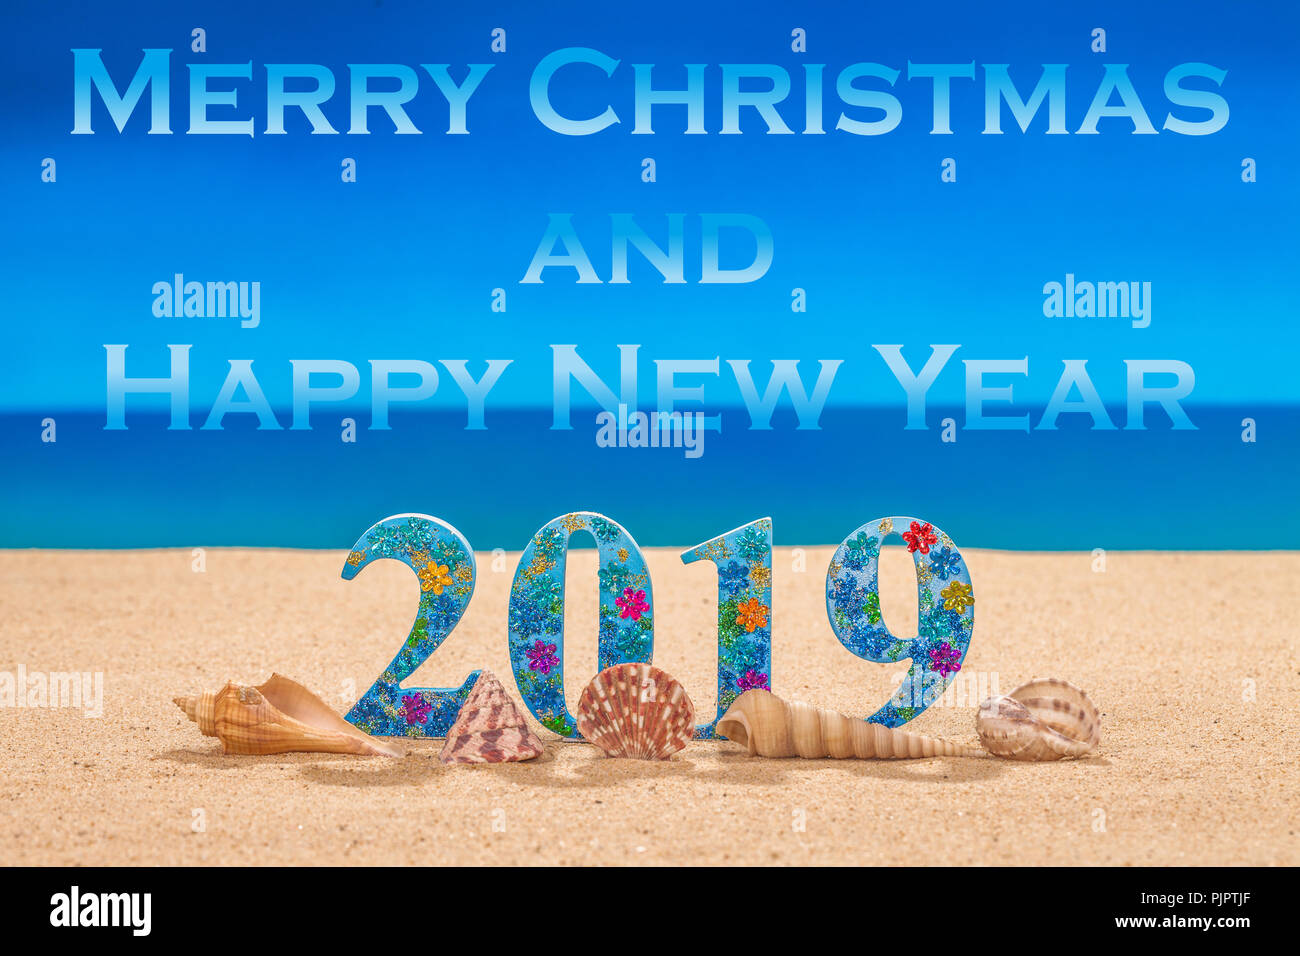 merry christmas and happy new year 2019 decorate with ...